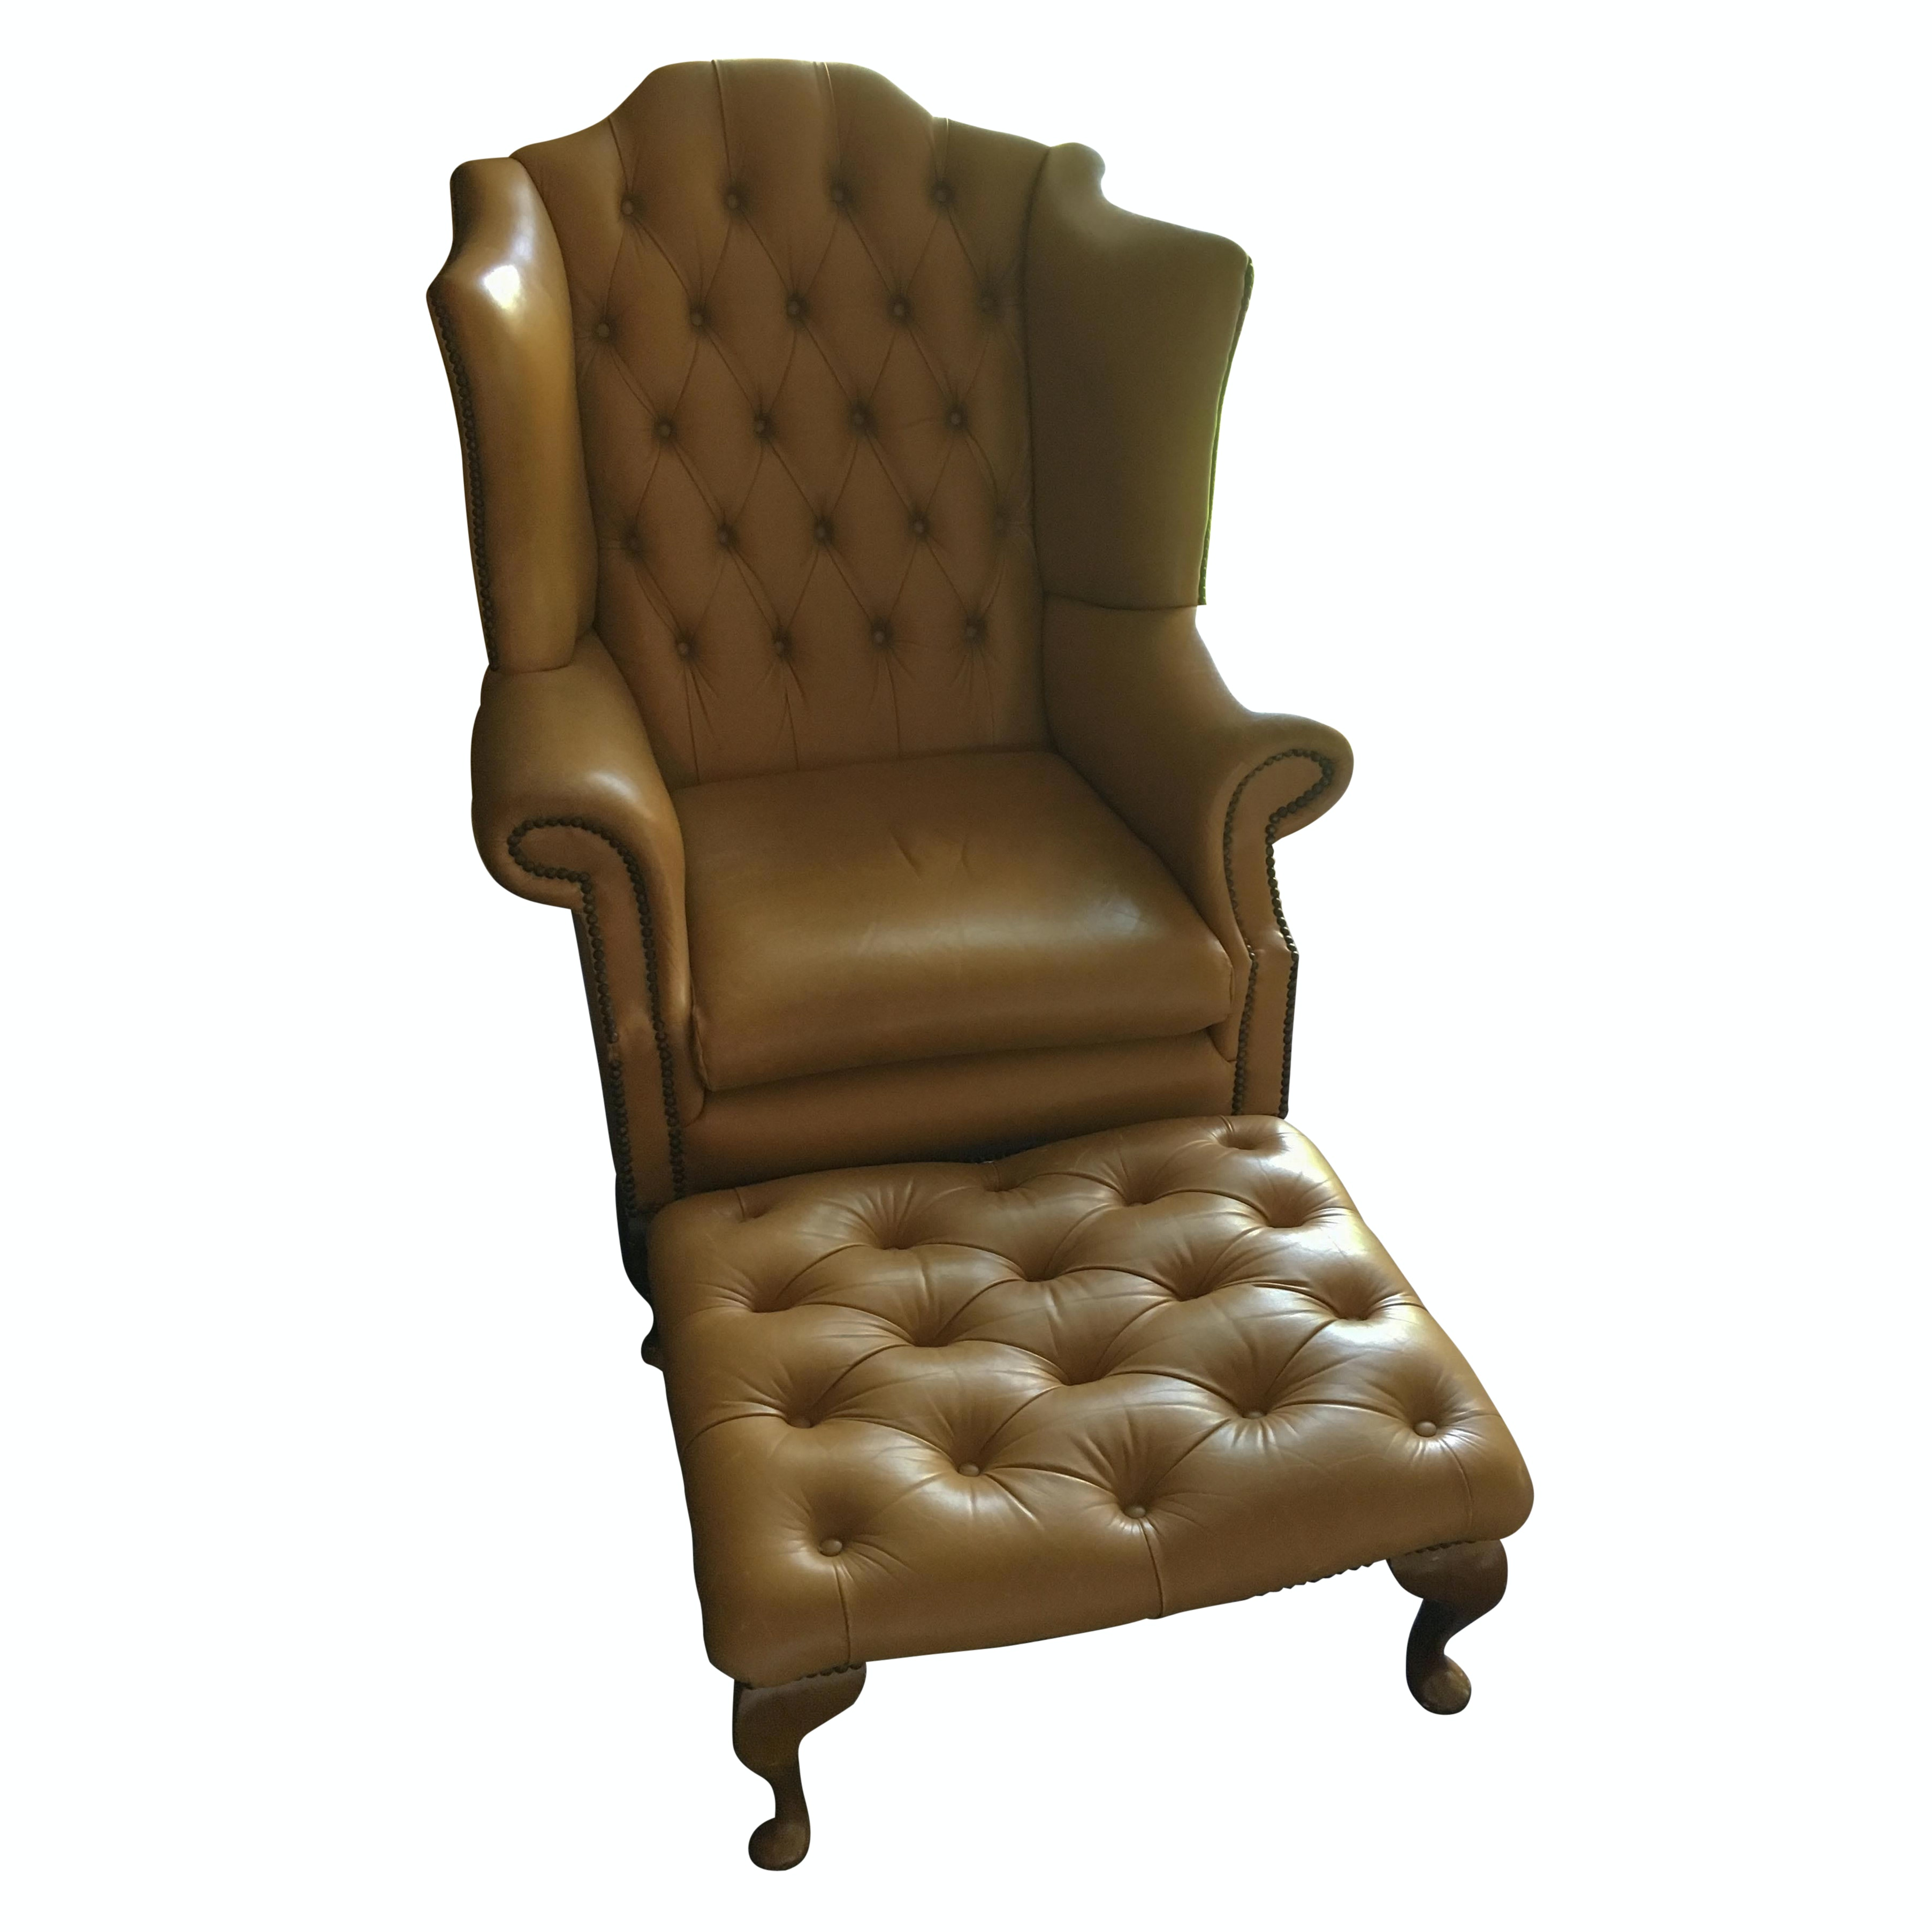 Butterscotch Leather Wingback Chair and Ottoman